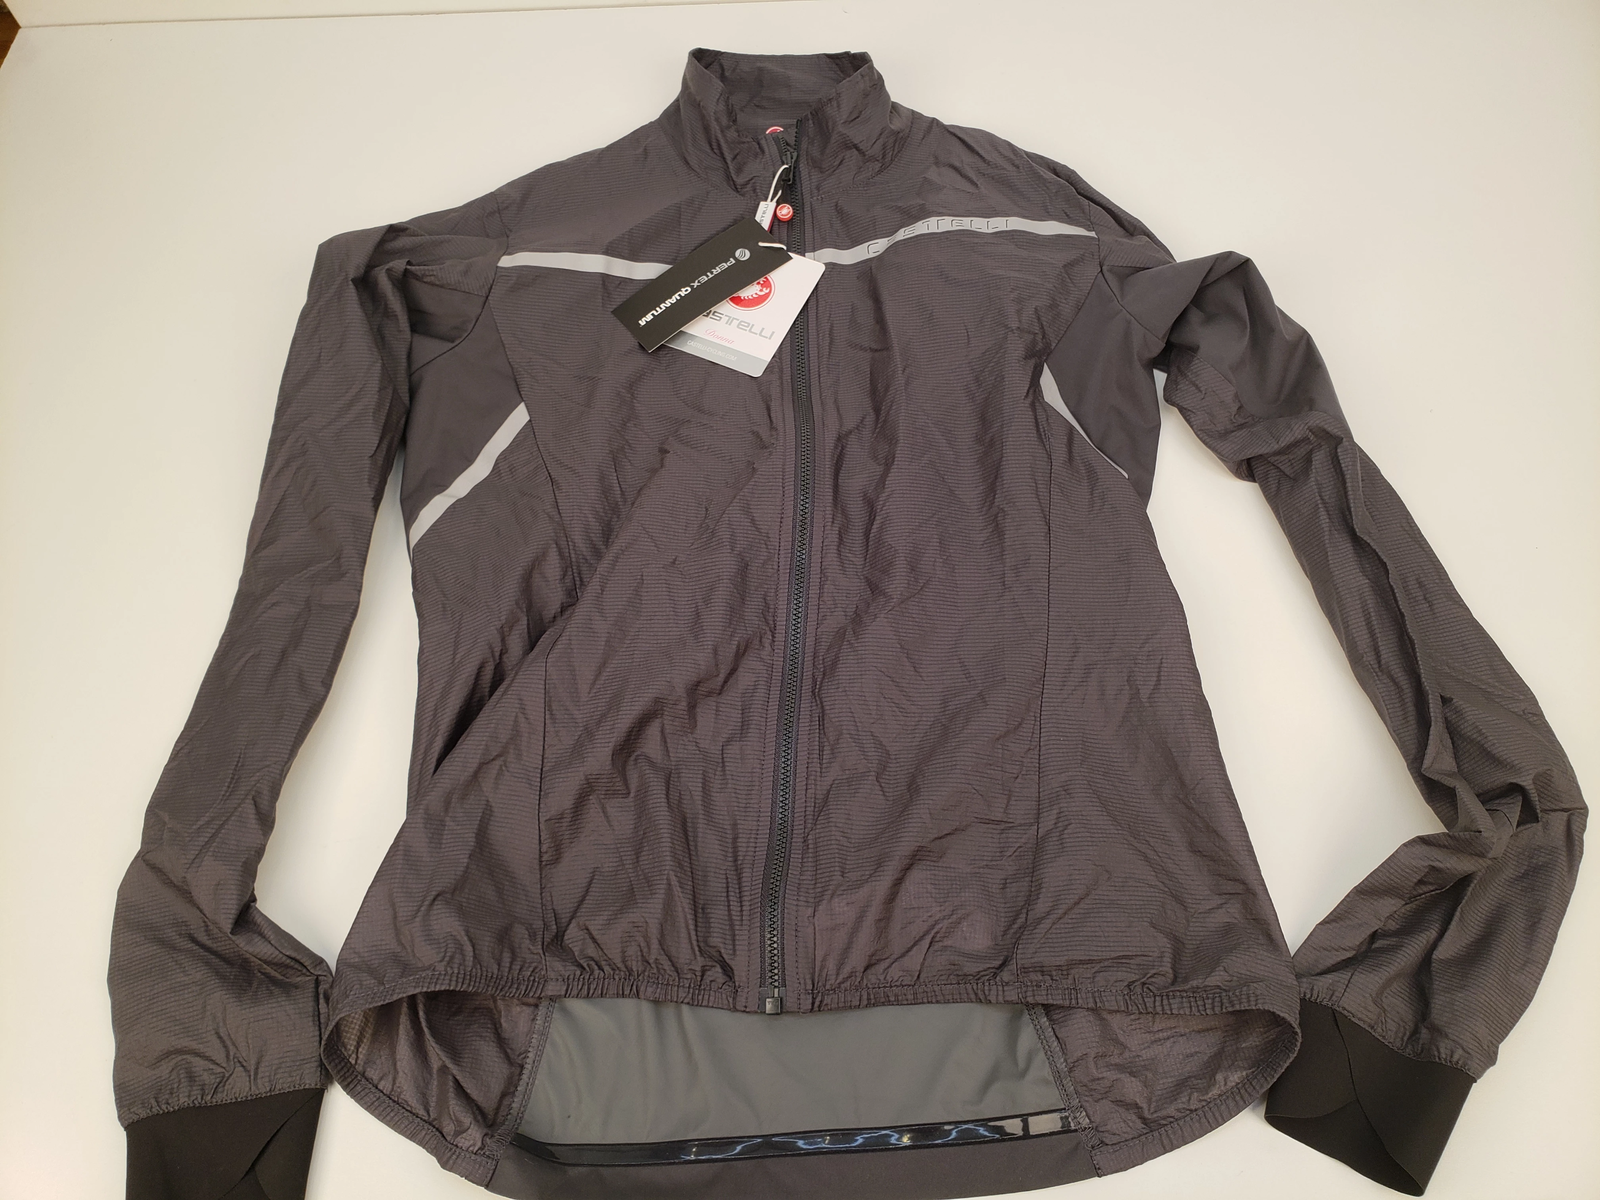 Castelli Superleggera Pertex Radfahren Jacket daSie small